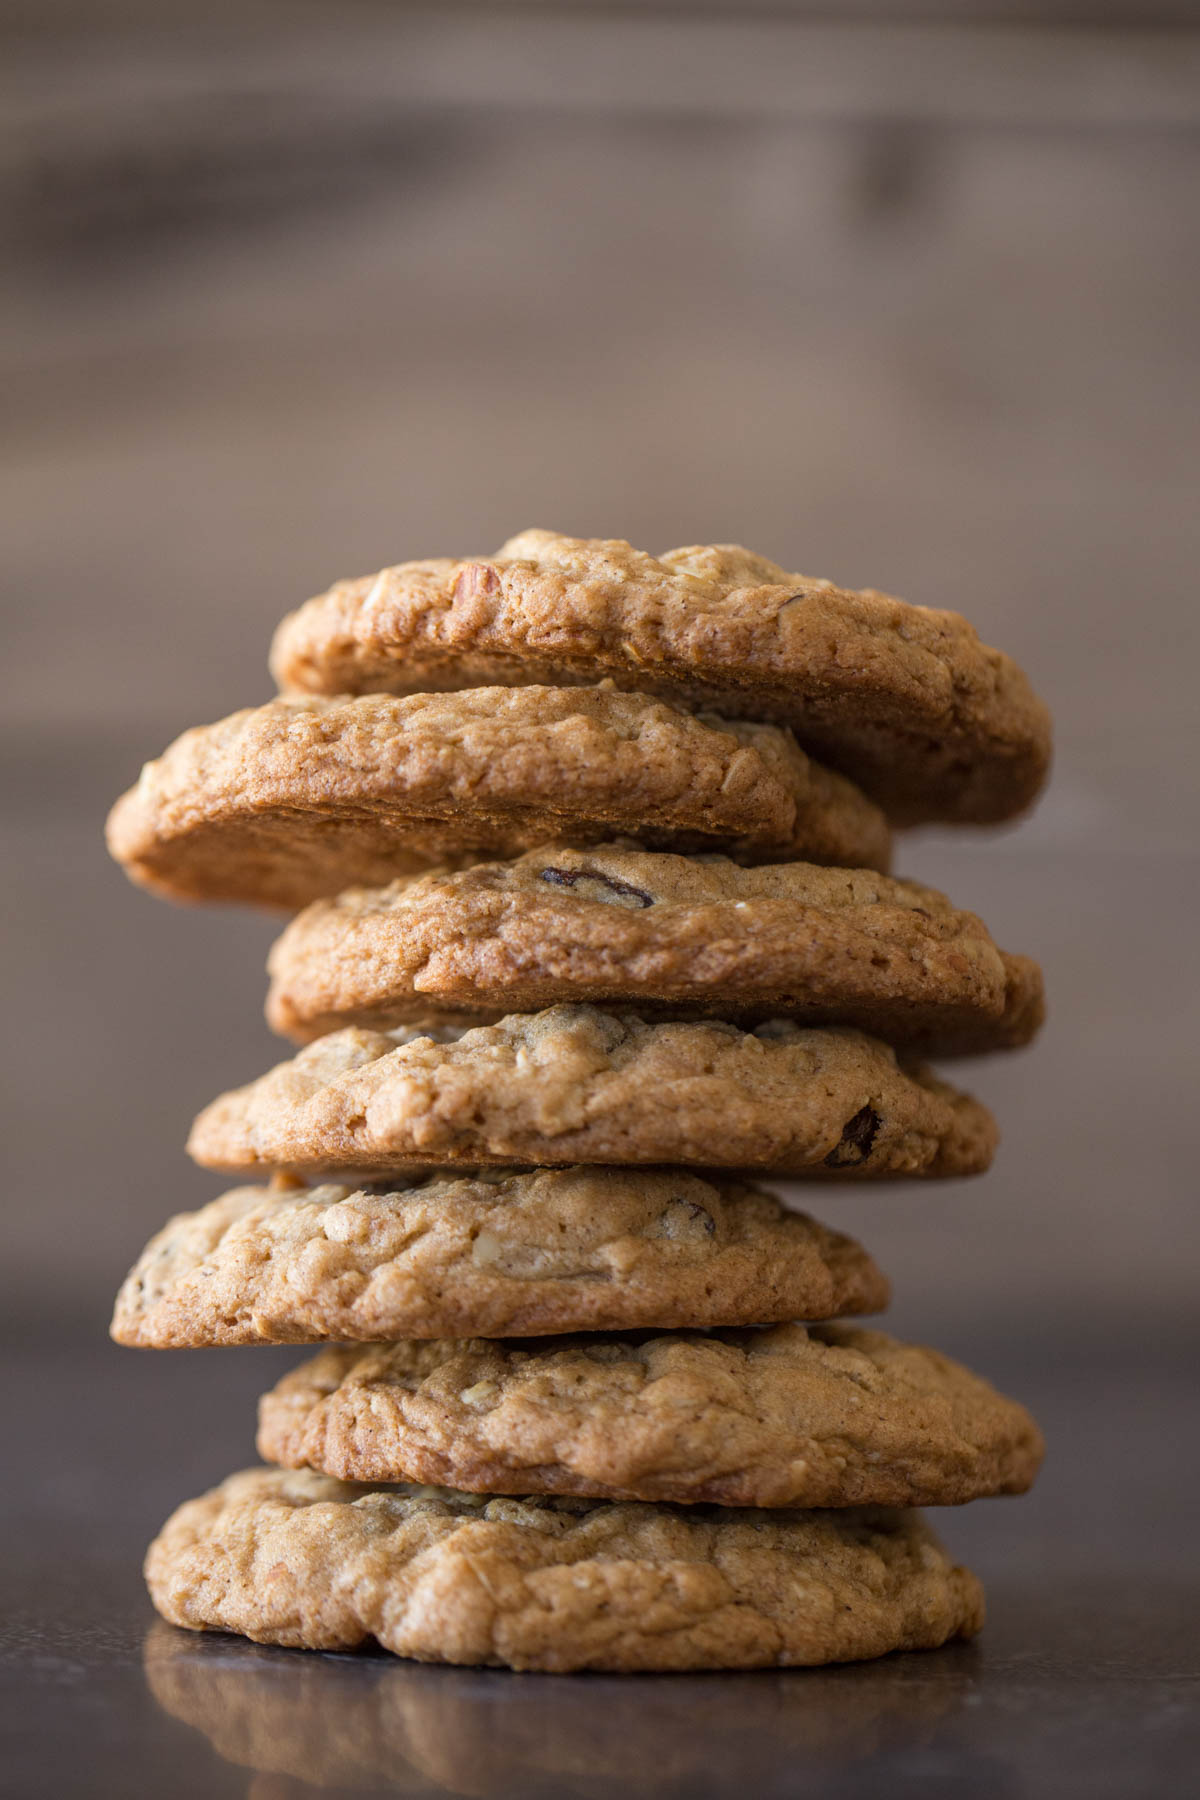 Seven Bakery Style Oatmeal Raisin Cookies stacked on top of each other.